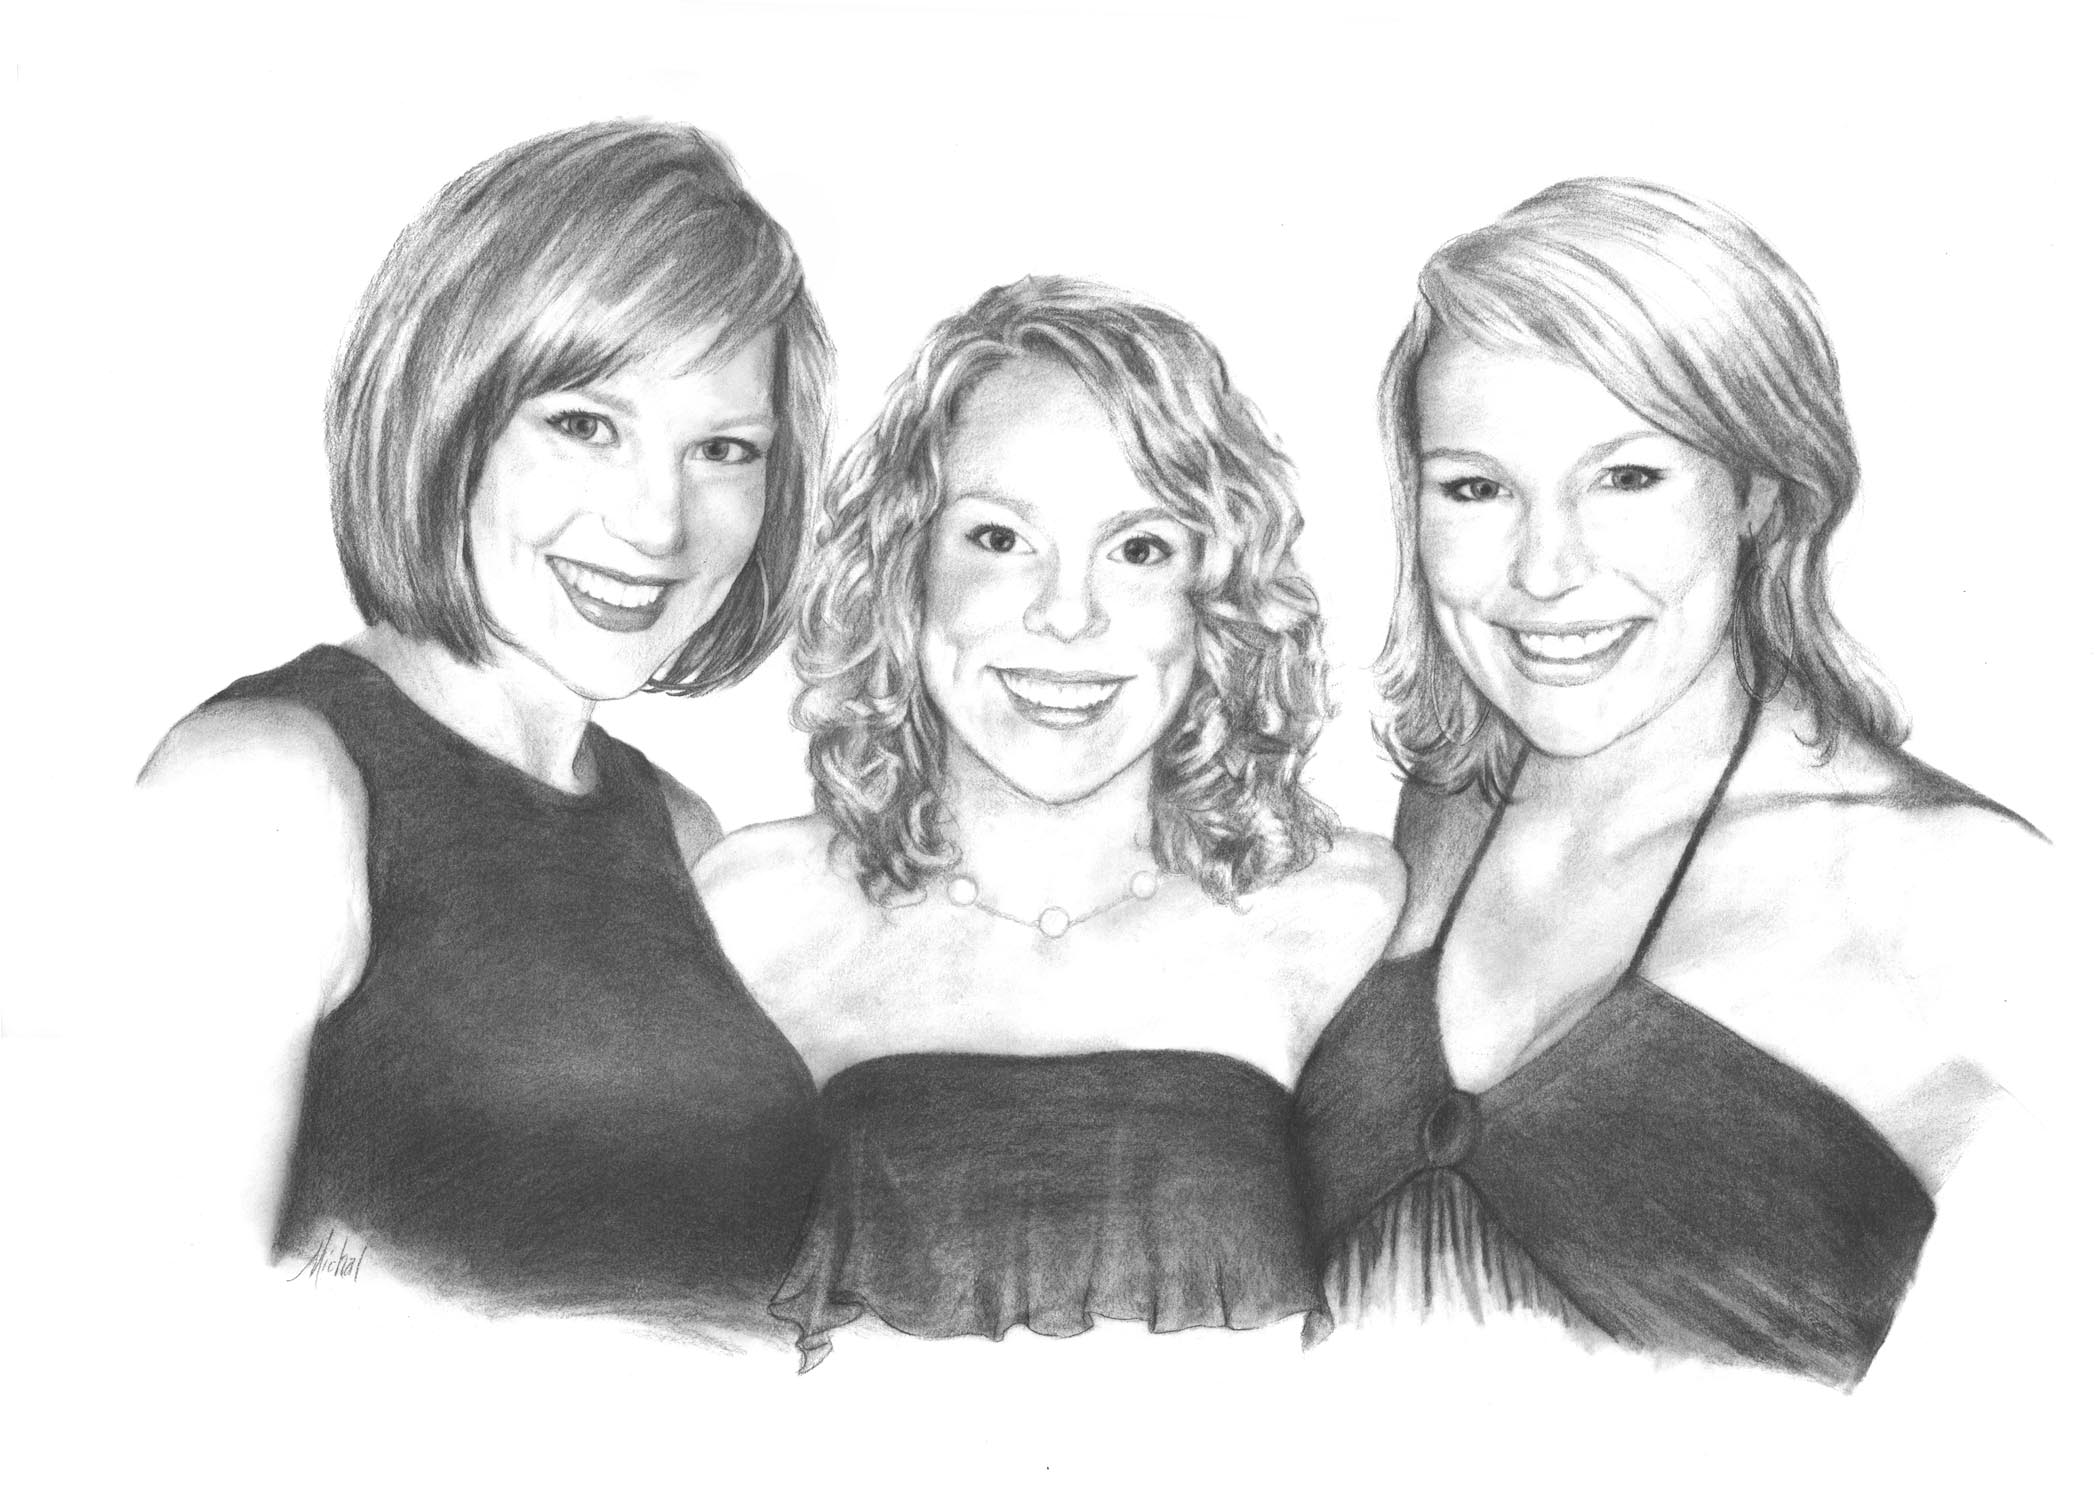 Drawn paper awesome Photograph art by Commissioned a